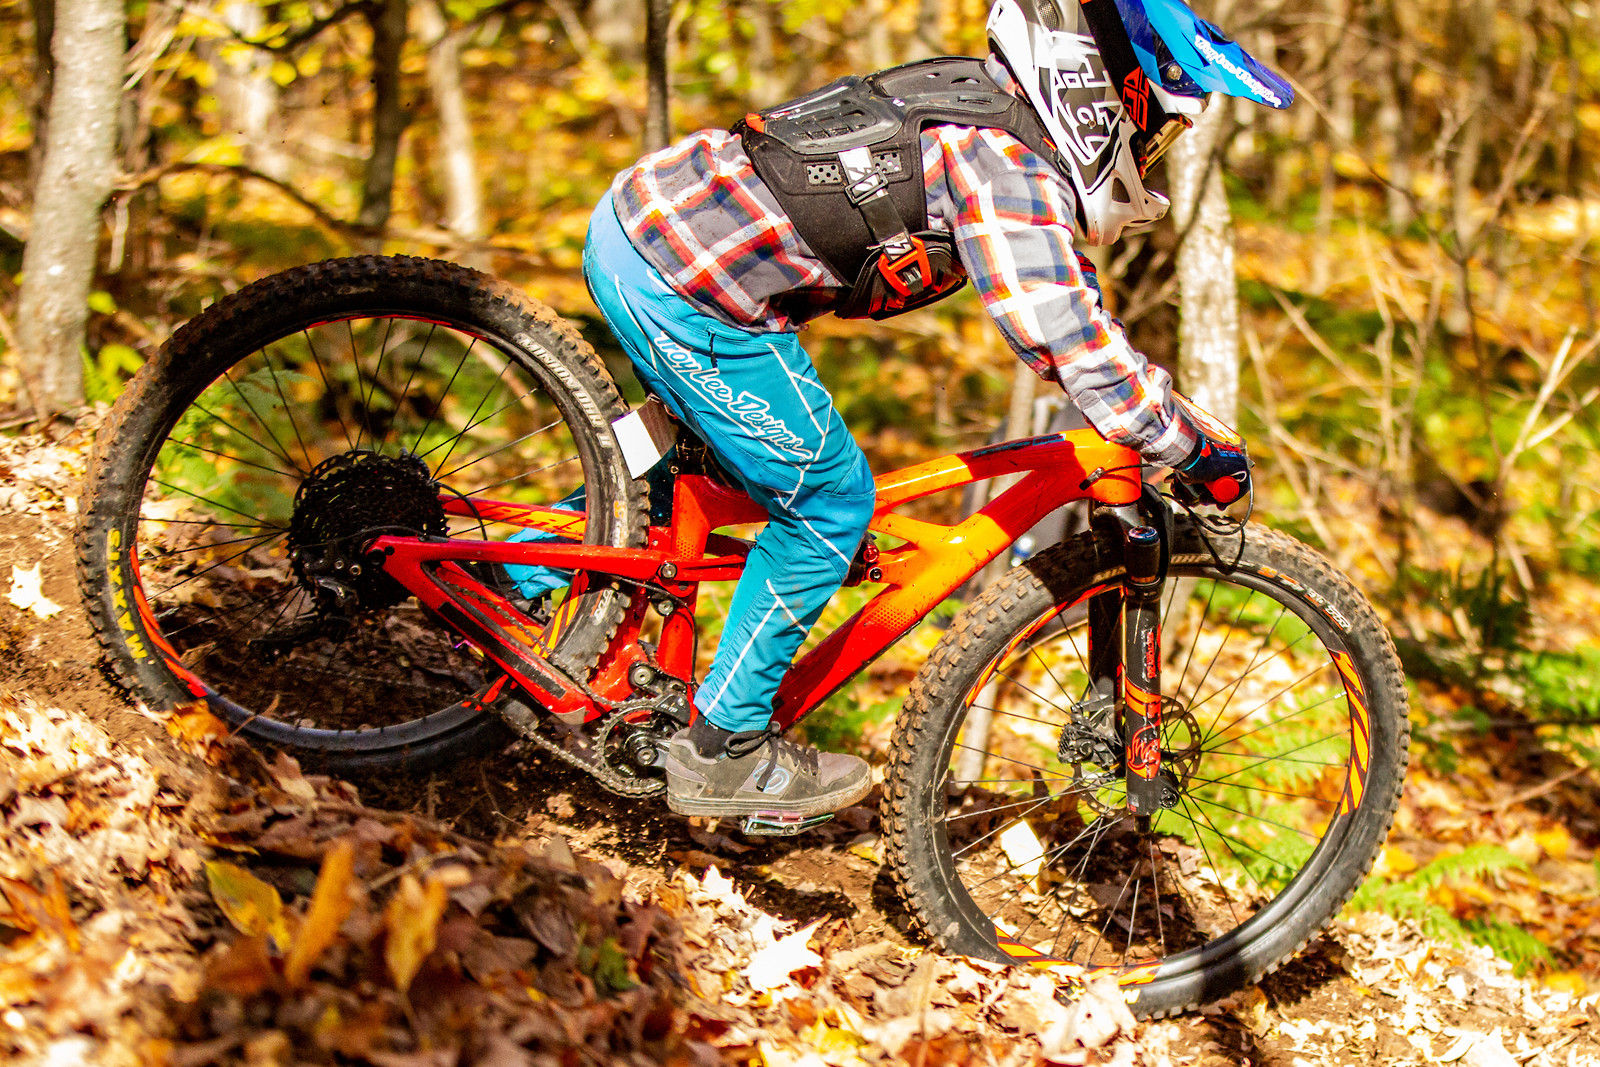 G-Out Project: Eastern States Cup DH Finals, Plattekill - Tristan Gauvin - JackRice - Mountain Biking Pictures - Vital MTB